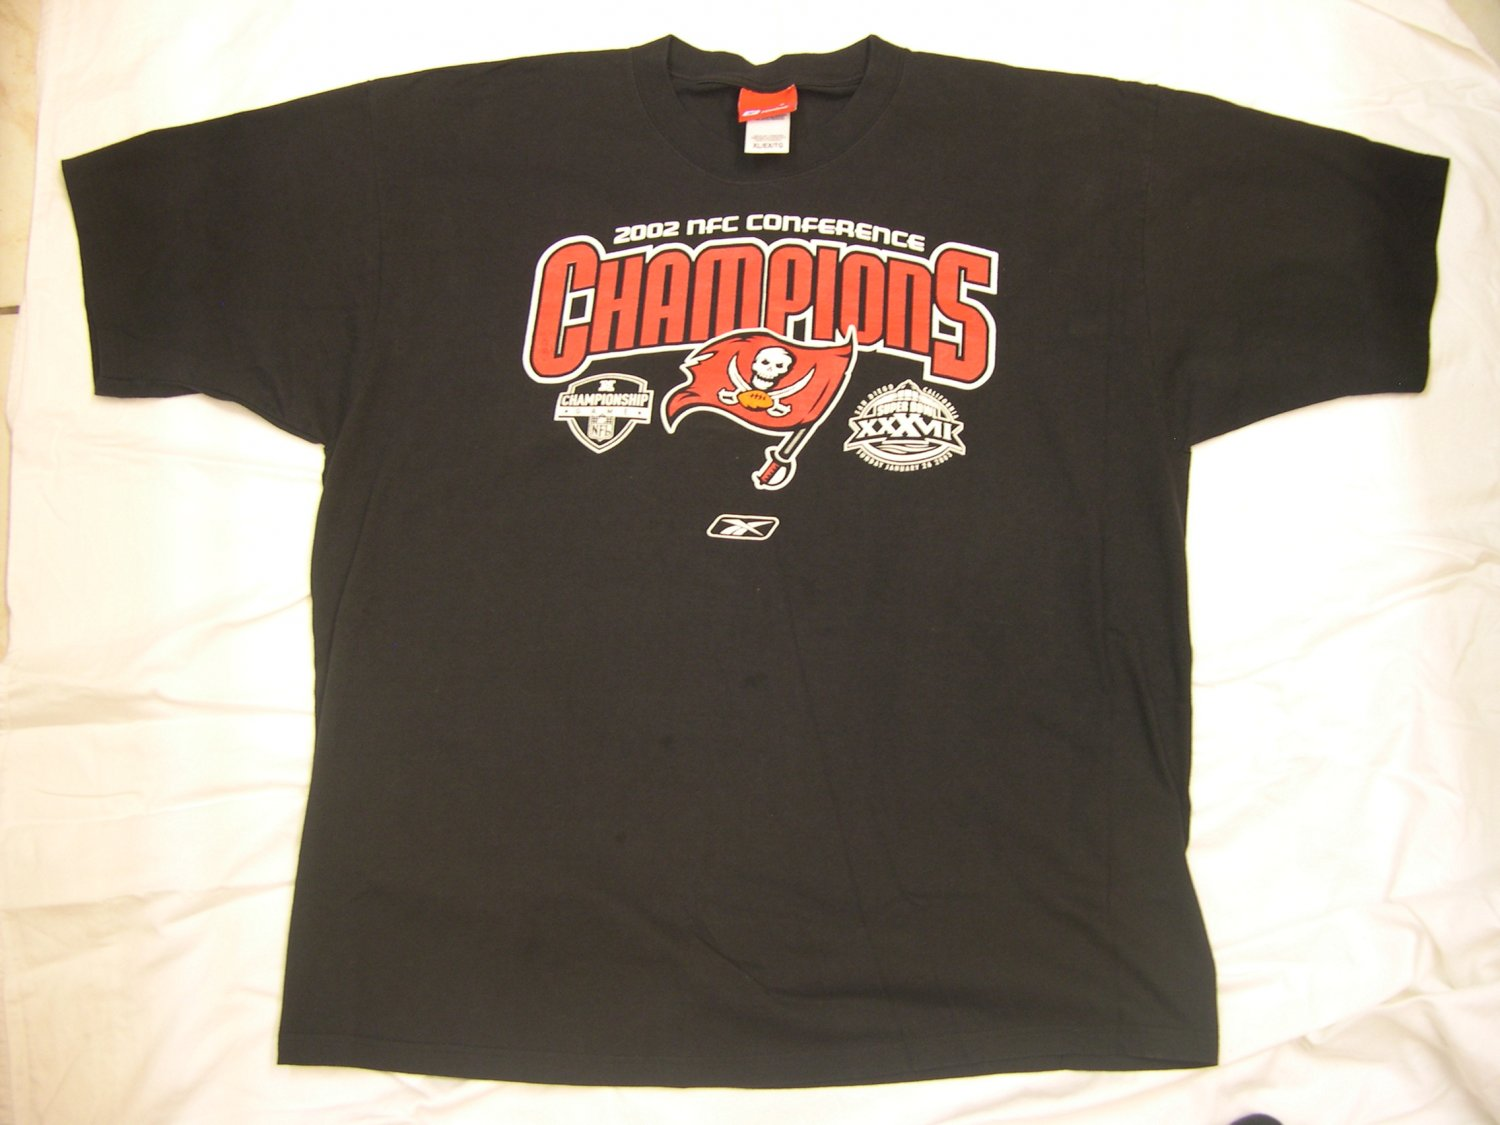 Nfl tampa bay buccaneers 2002 nfc championship super bowl for Tampa t shirt printing